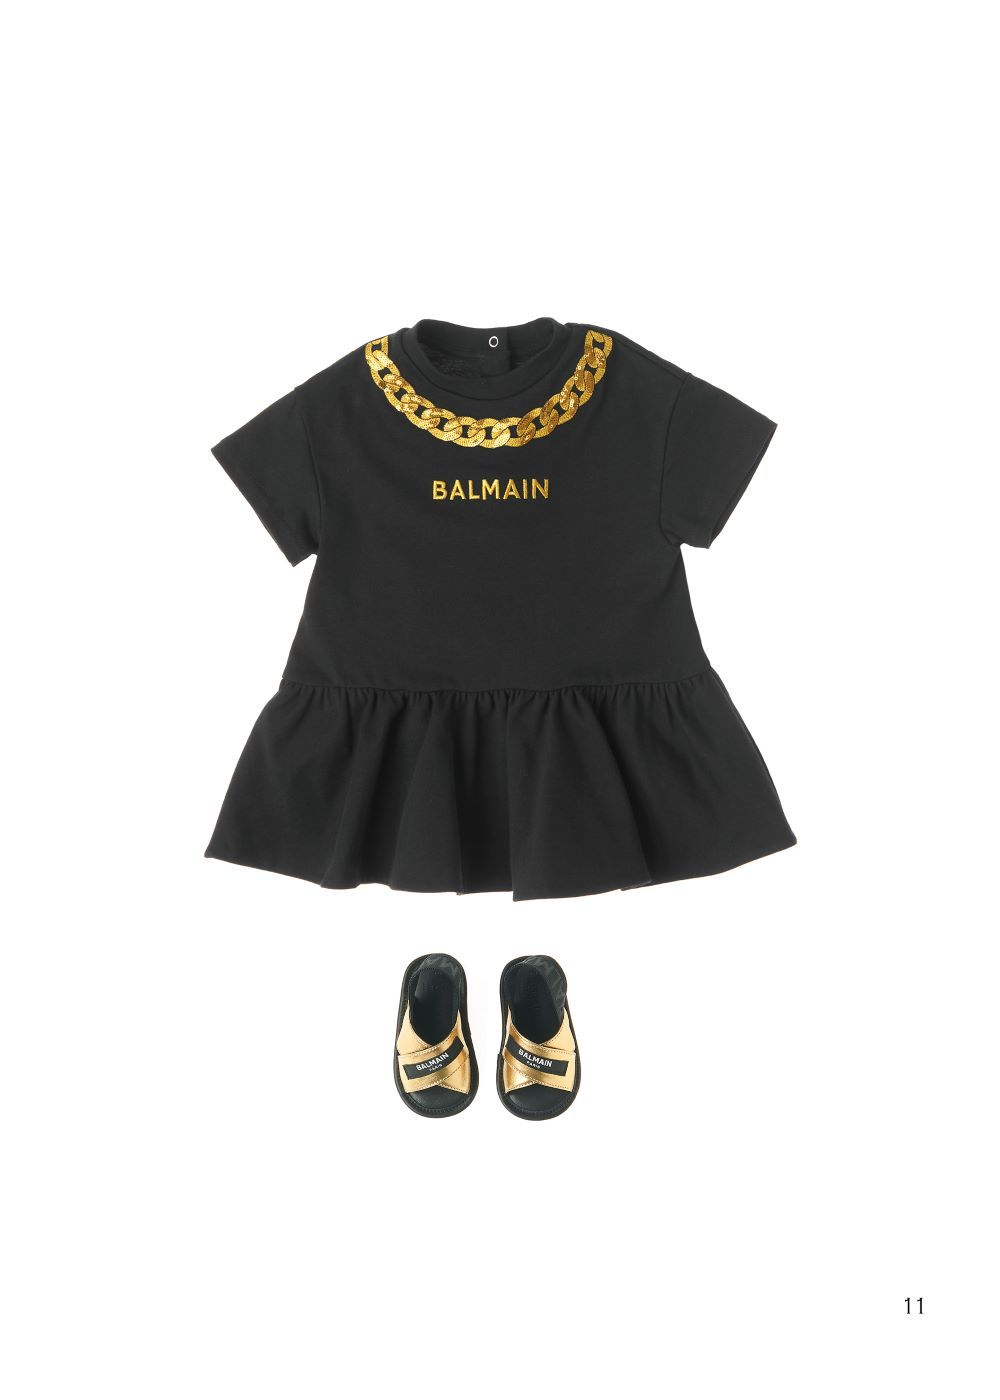 6O1881 OB690 / 930 BLACK / Baby Girls Ss Jersey Logo Dress W/Chain Print